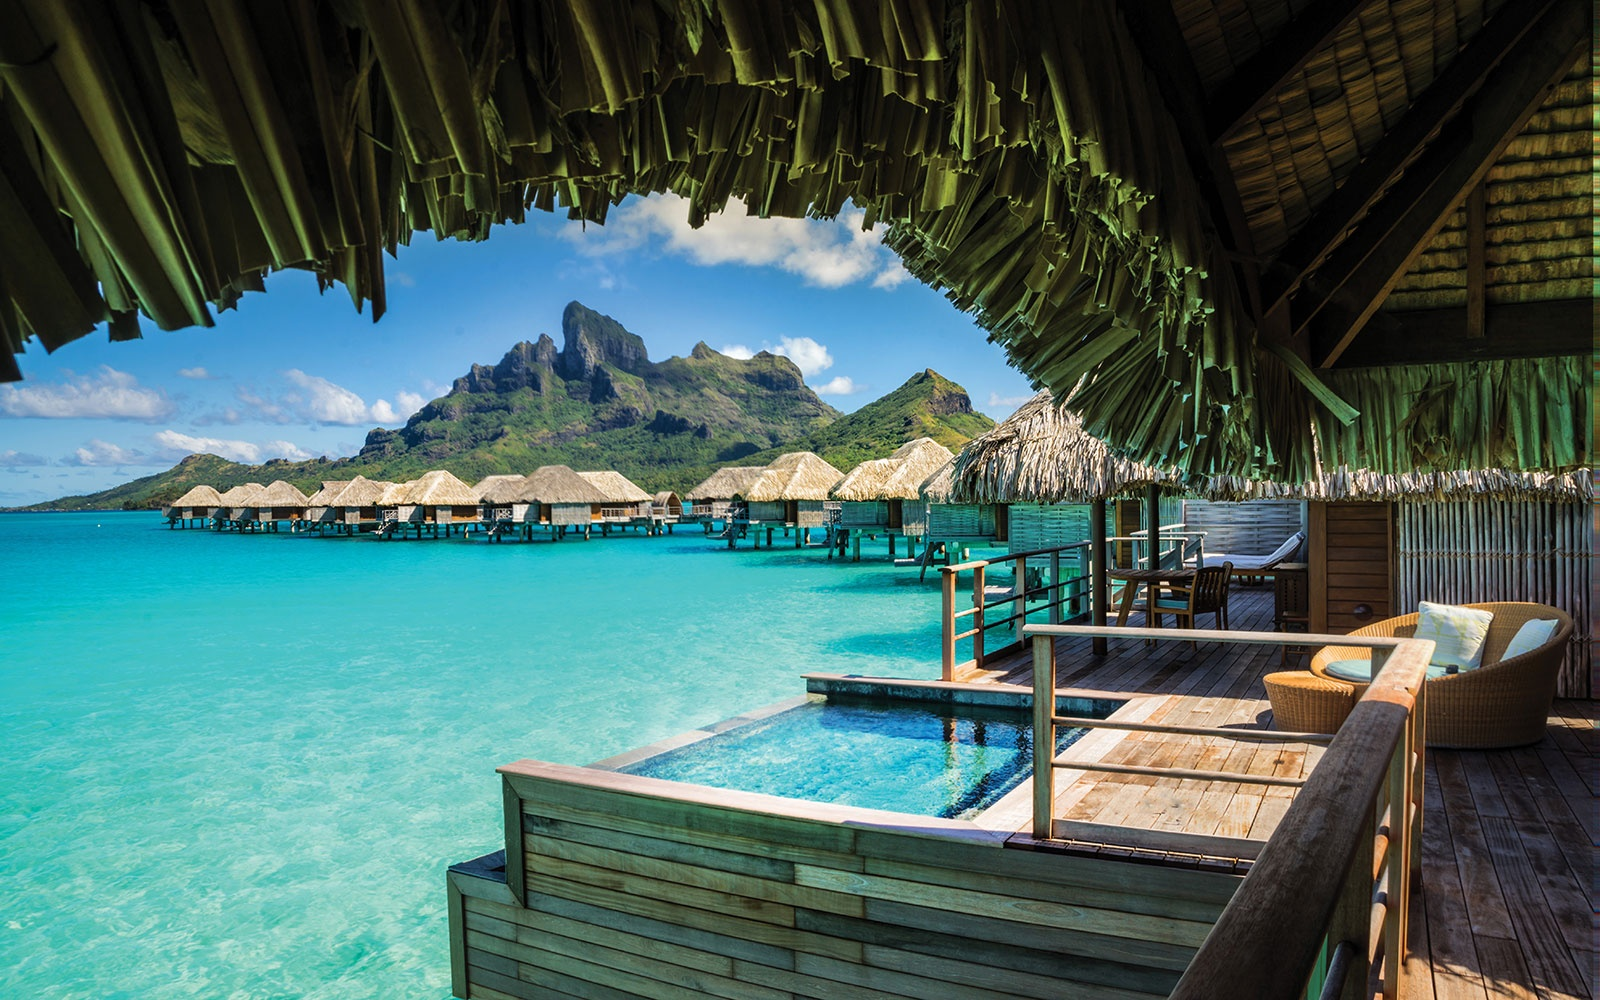 No. 16: Four Seasons Resort Bora Bora